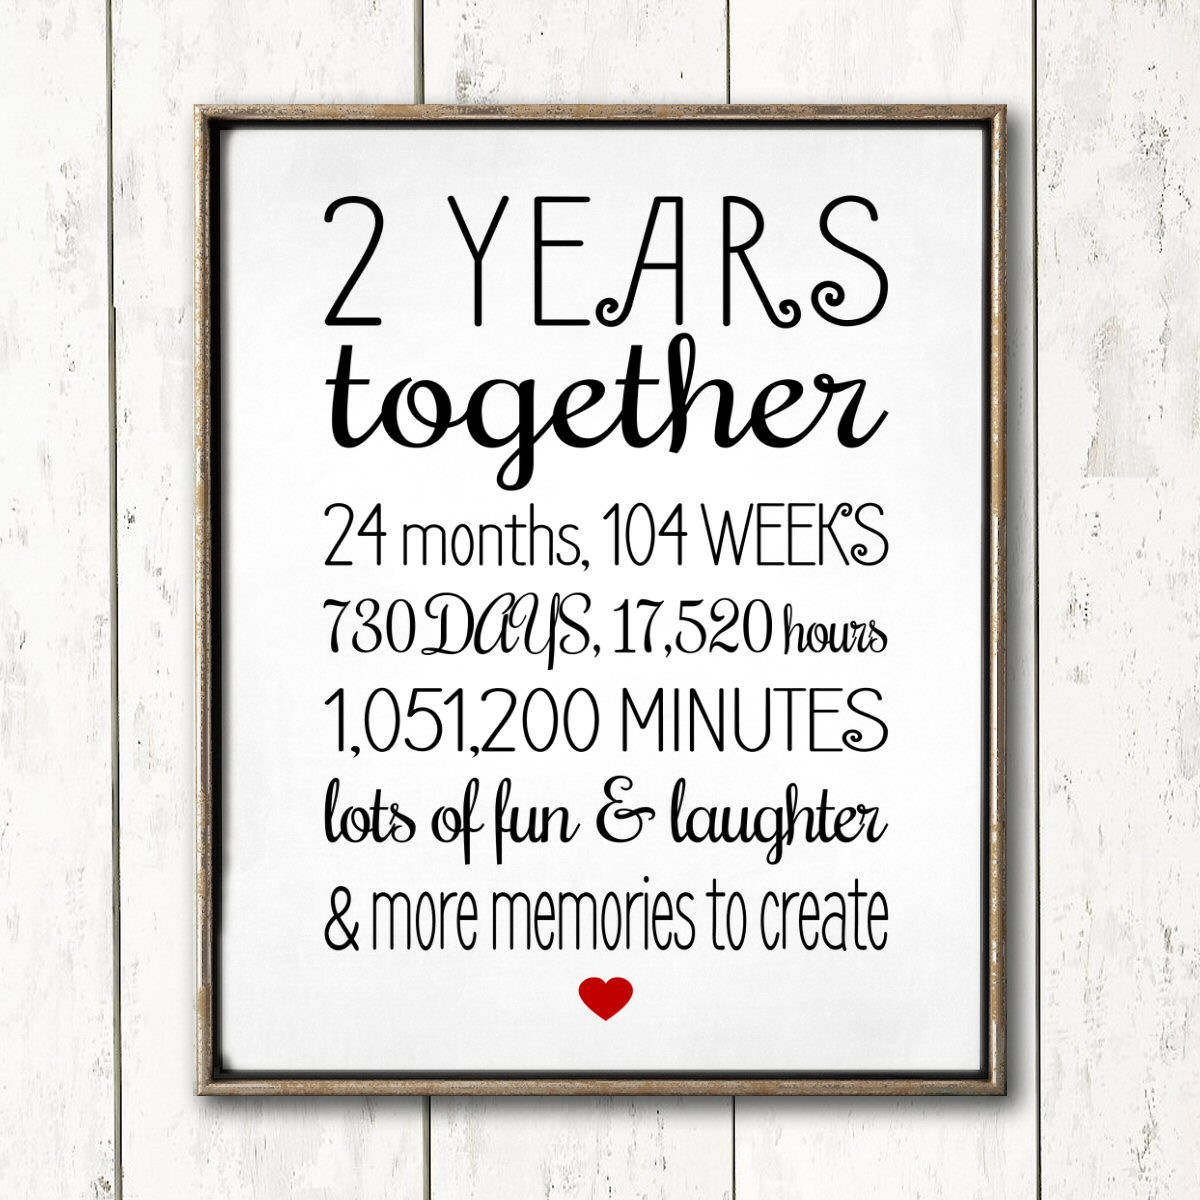 9 YEAR ANNIVERSARY Sign Editable Personalize with names  Etsy